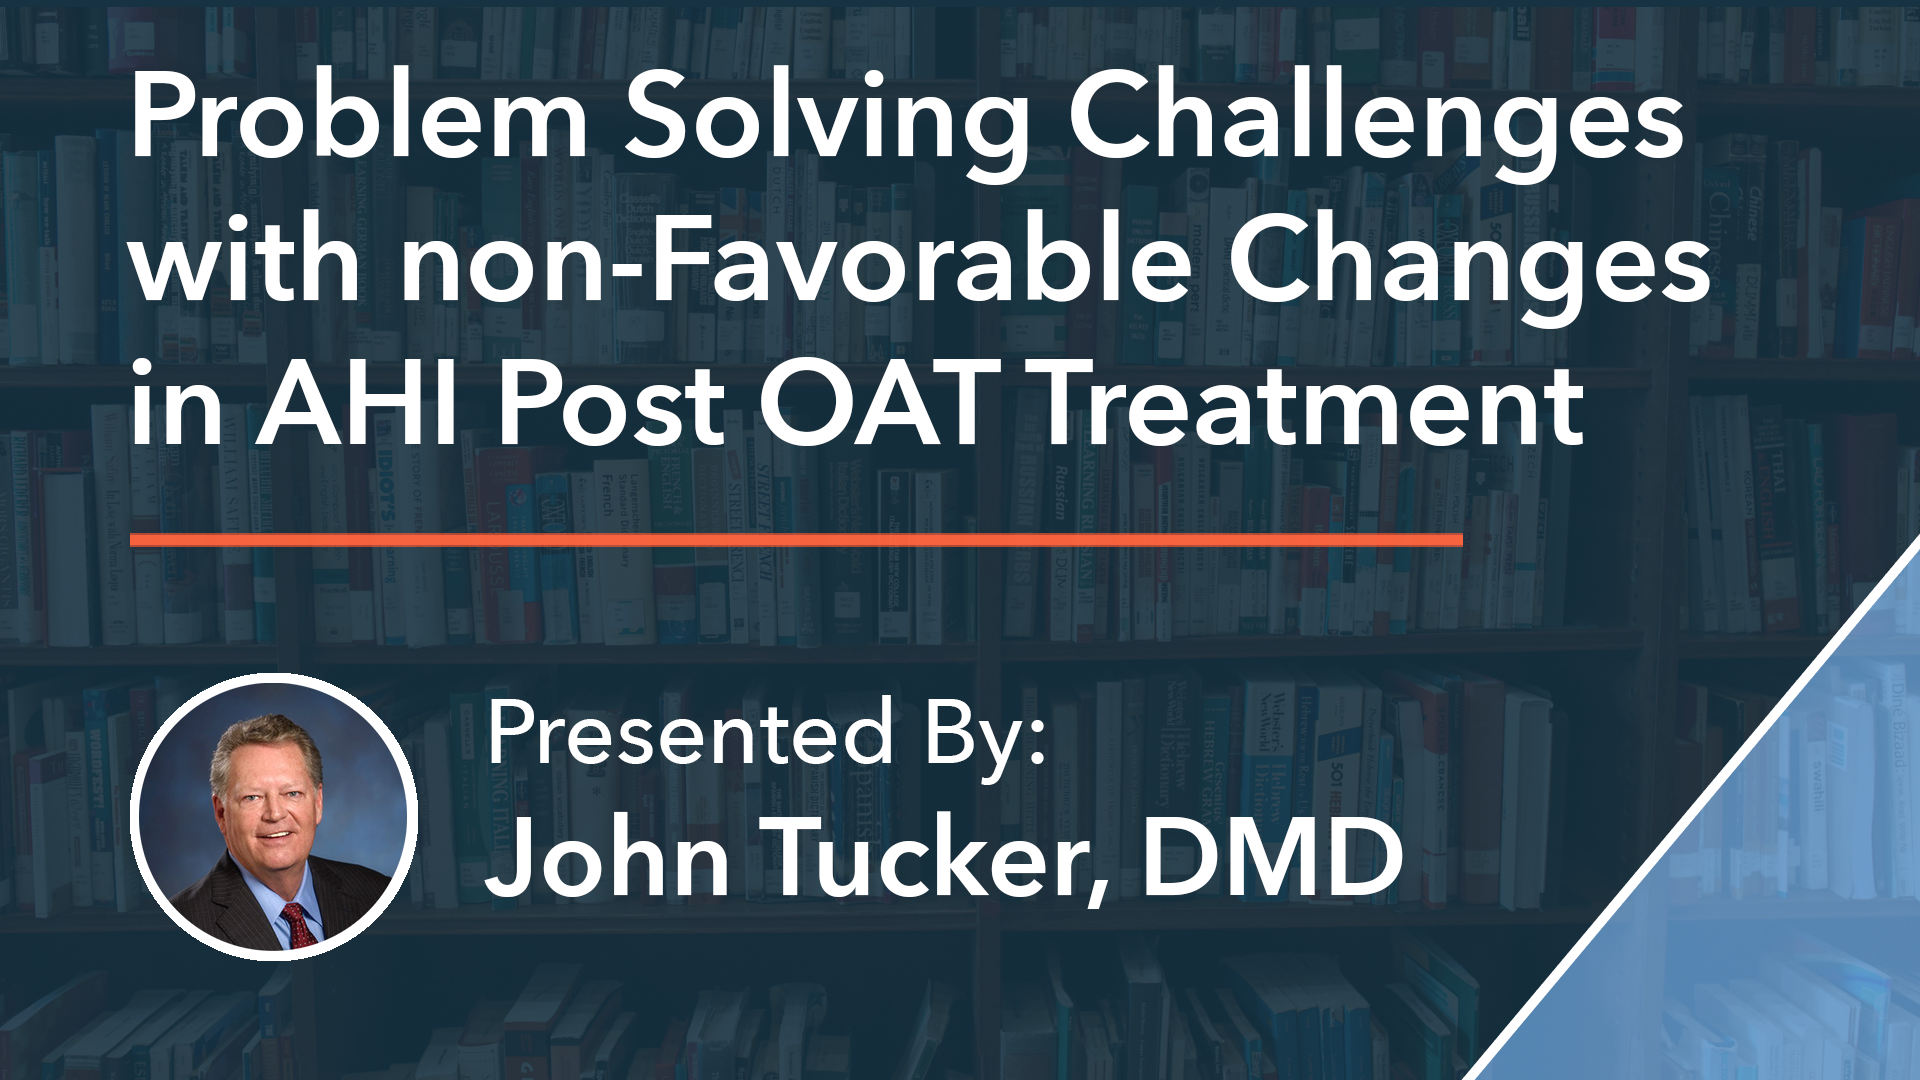 Problem Solving Challenges with non-Favorable Changes in AHI Post OAT Treatment Dr John Tucker